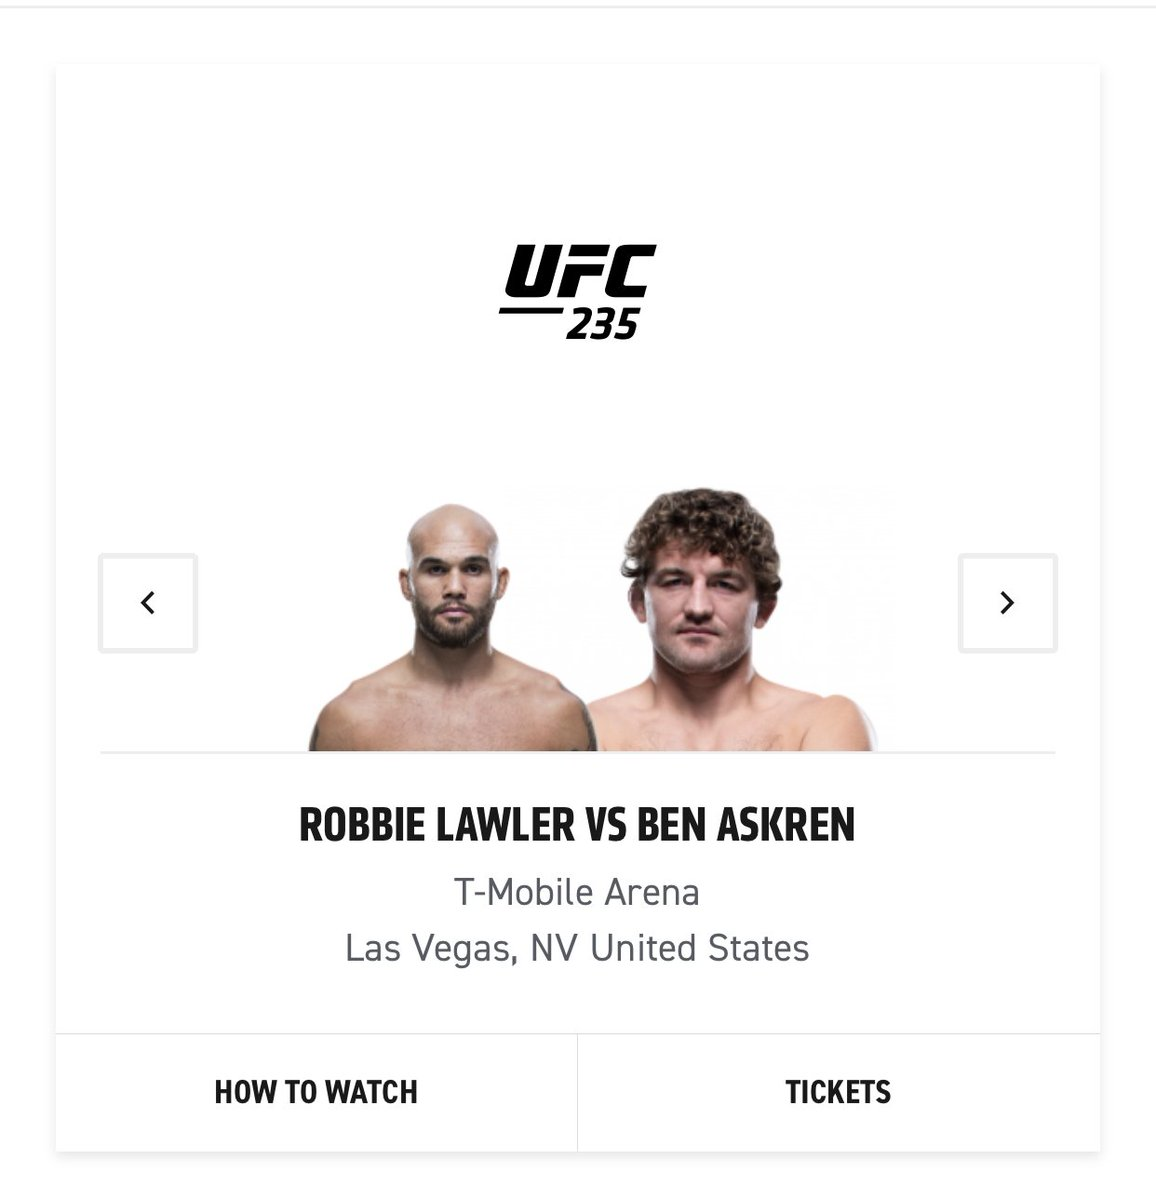 Roses are red,  Violets are blue,  We updated your headshot,  Just for you.  #HappyValentinesDay to @BenAskren. #UFC235